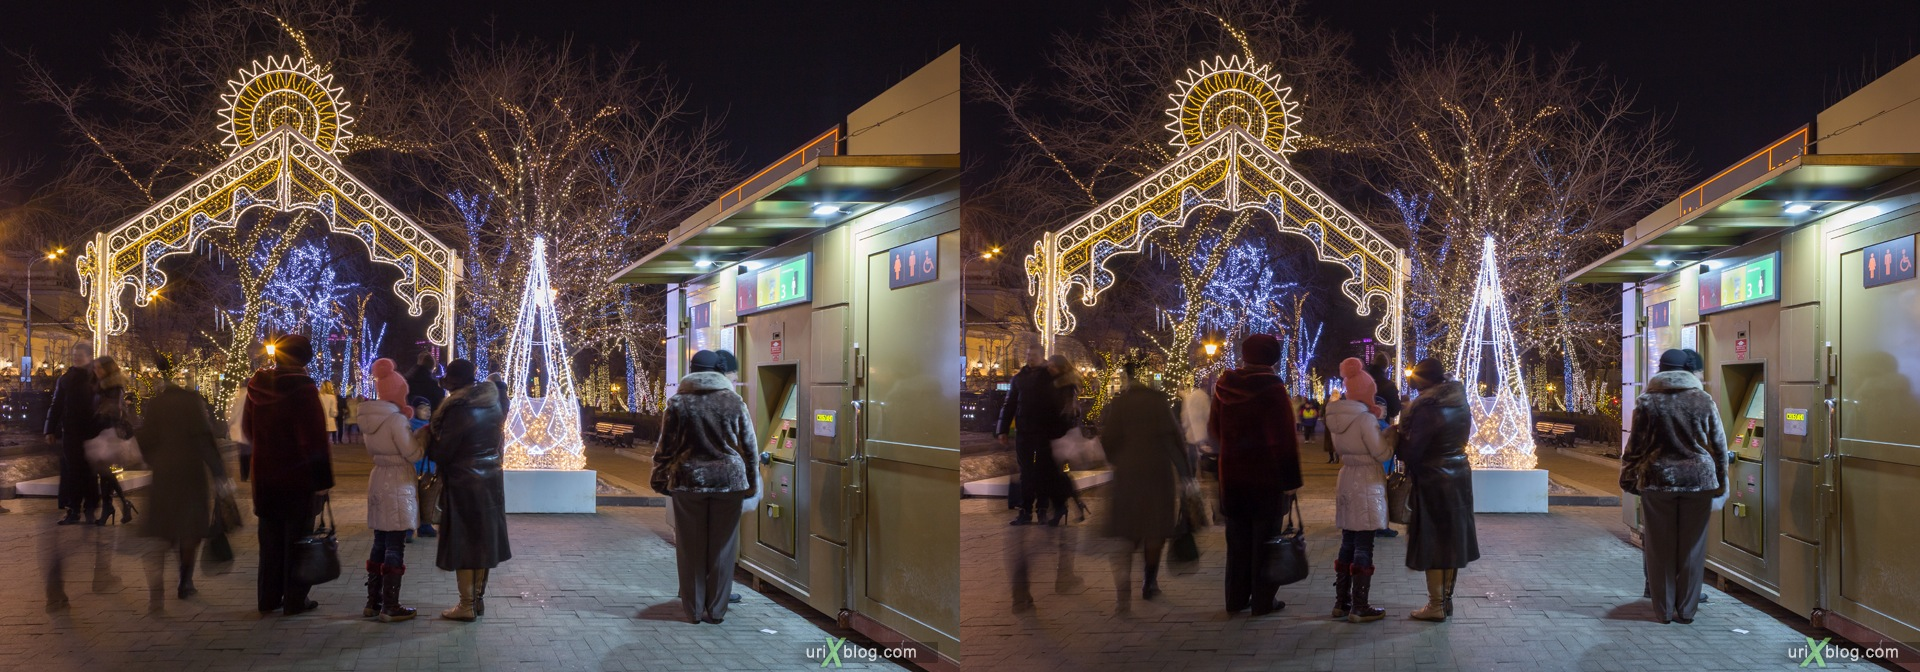 2013, Moscow, Russia, winter, New Year, night, lights, 3D, stereo pair, cross-eyed, crossview, cross view stereo pair, stereoscopic